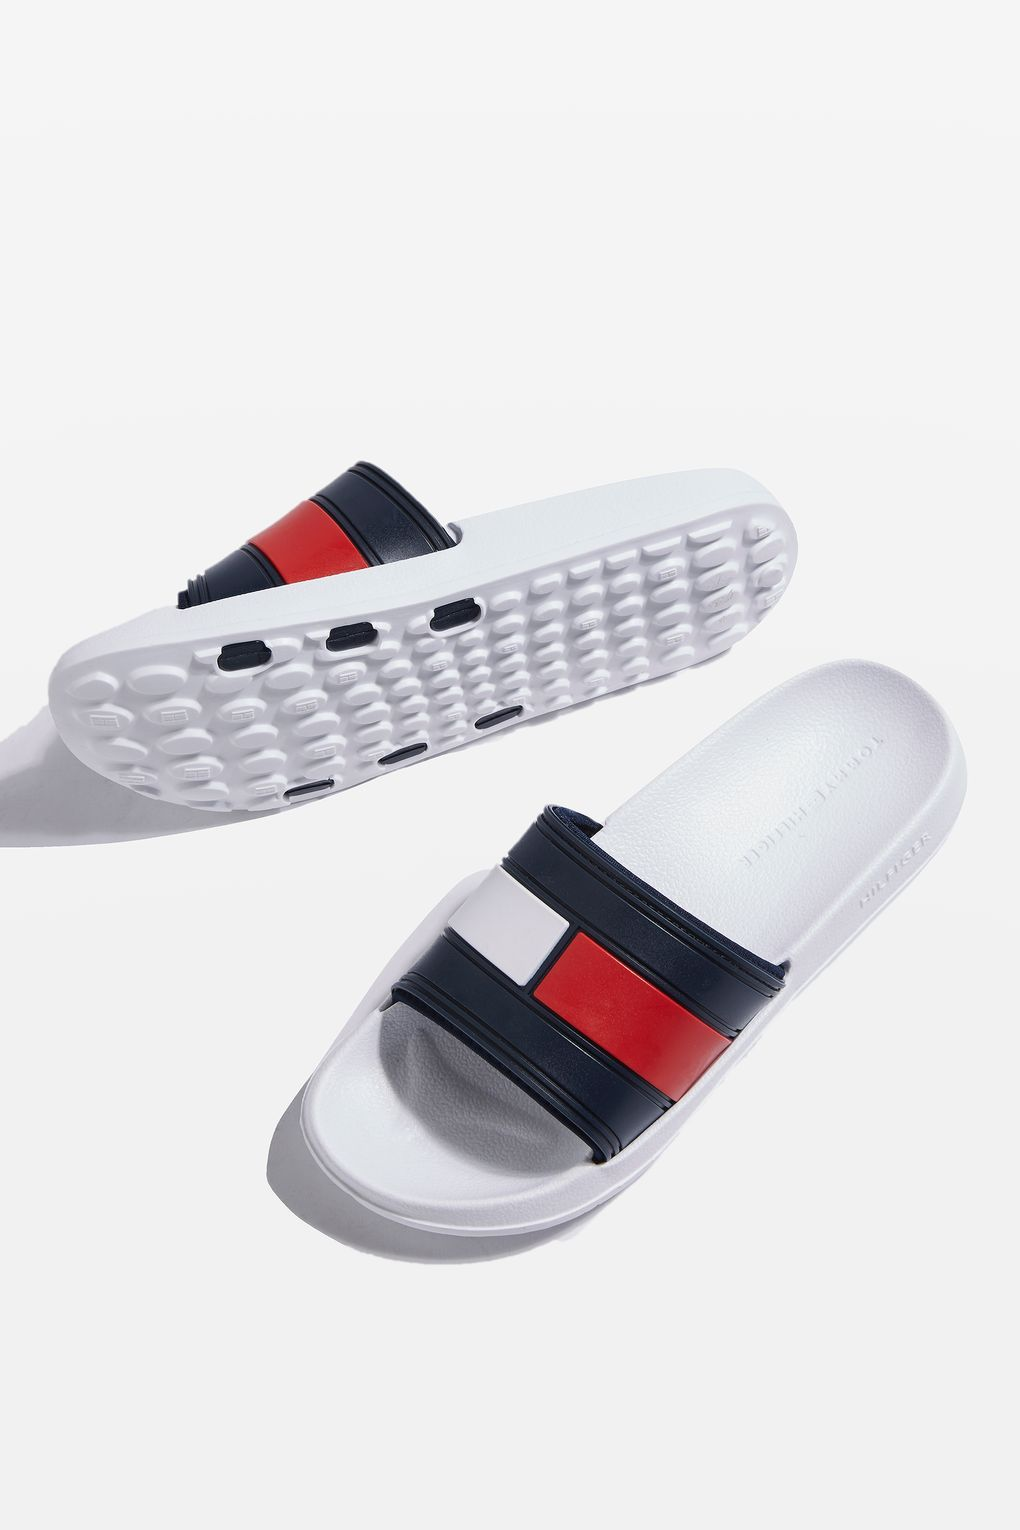 1483eae943 Sliders by Tommy Hilfiger in 2019